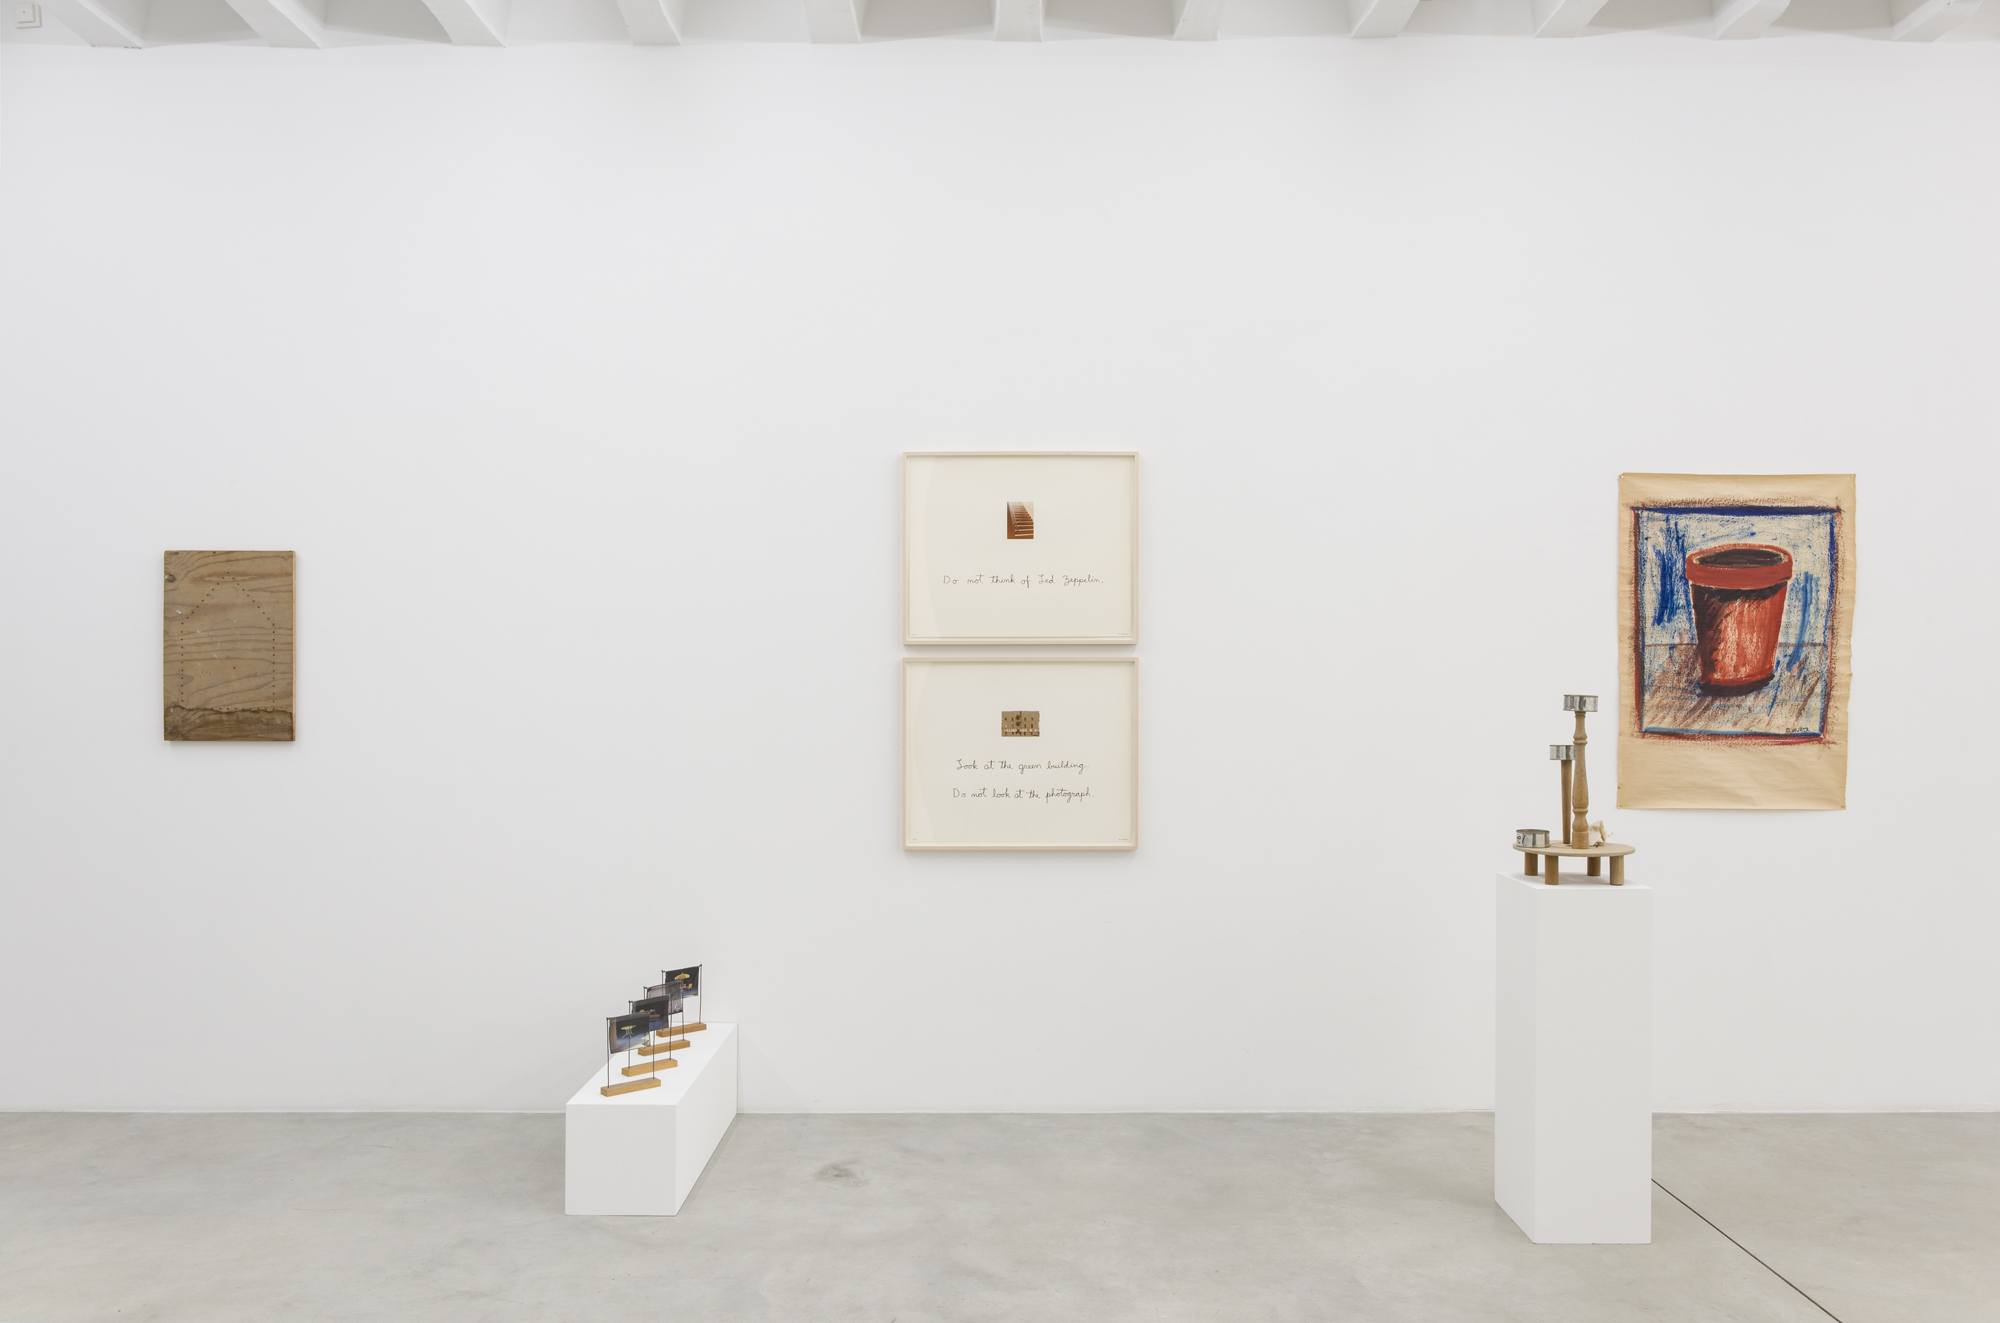 B. Wurtz, The First Twenty Years, exhibition view, Galerija Gregor Podnar, Berlin, 2018. Photo: Marcus Schneider